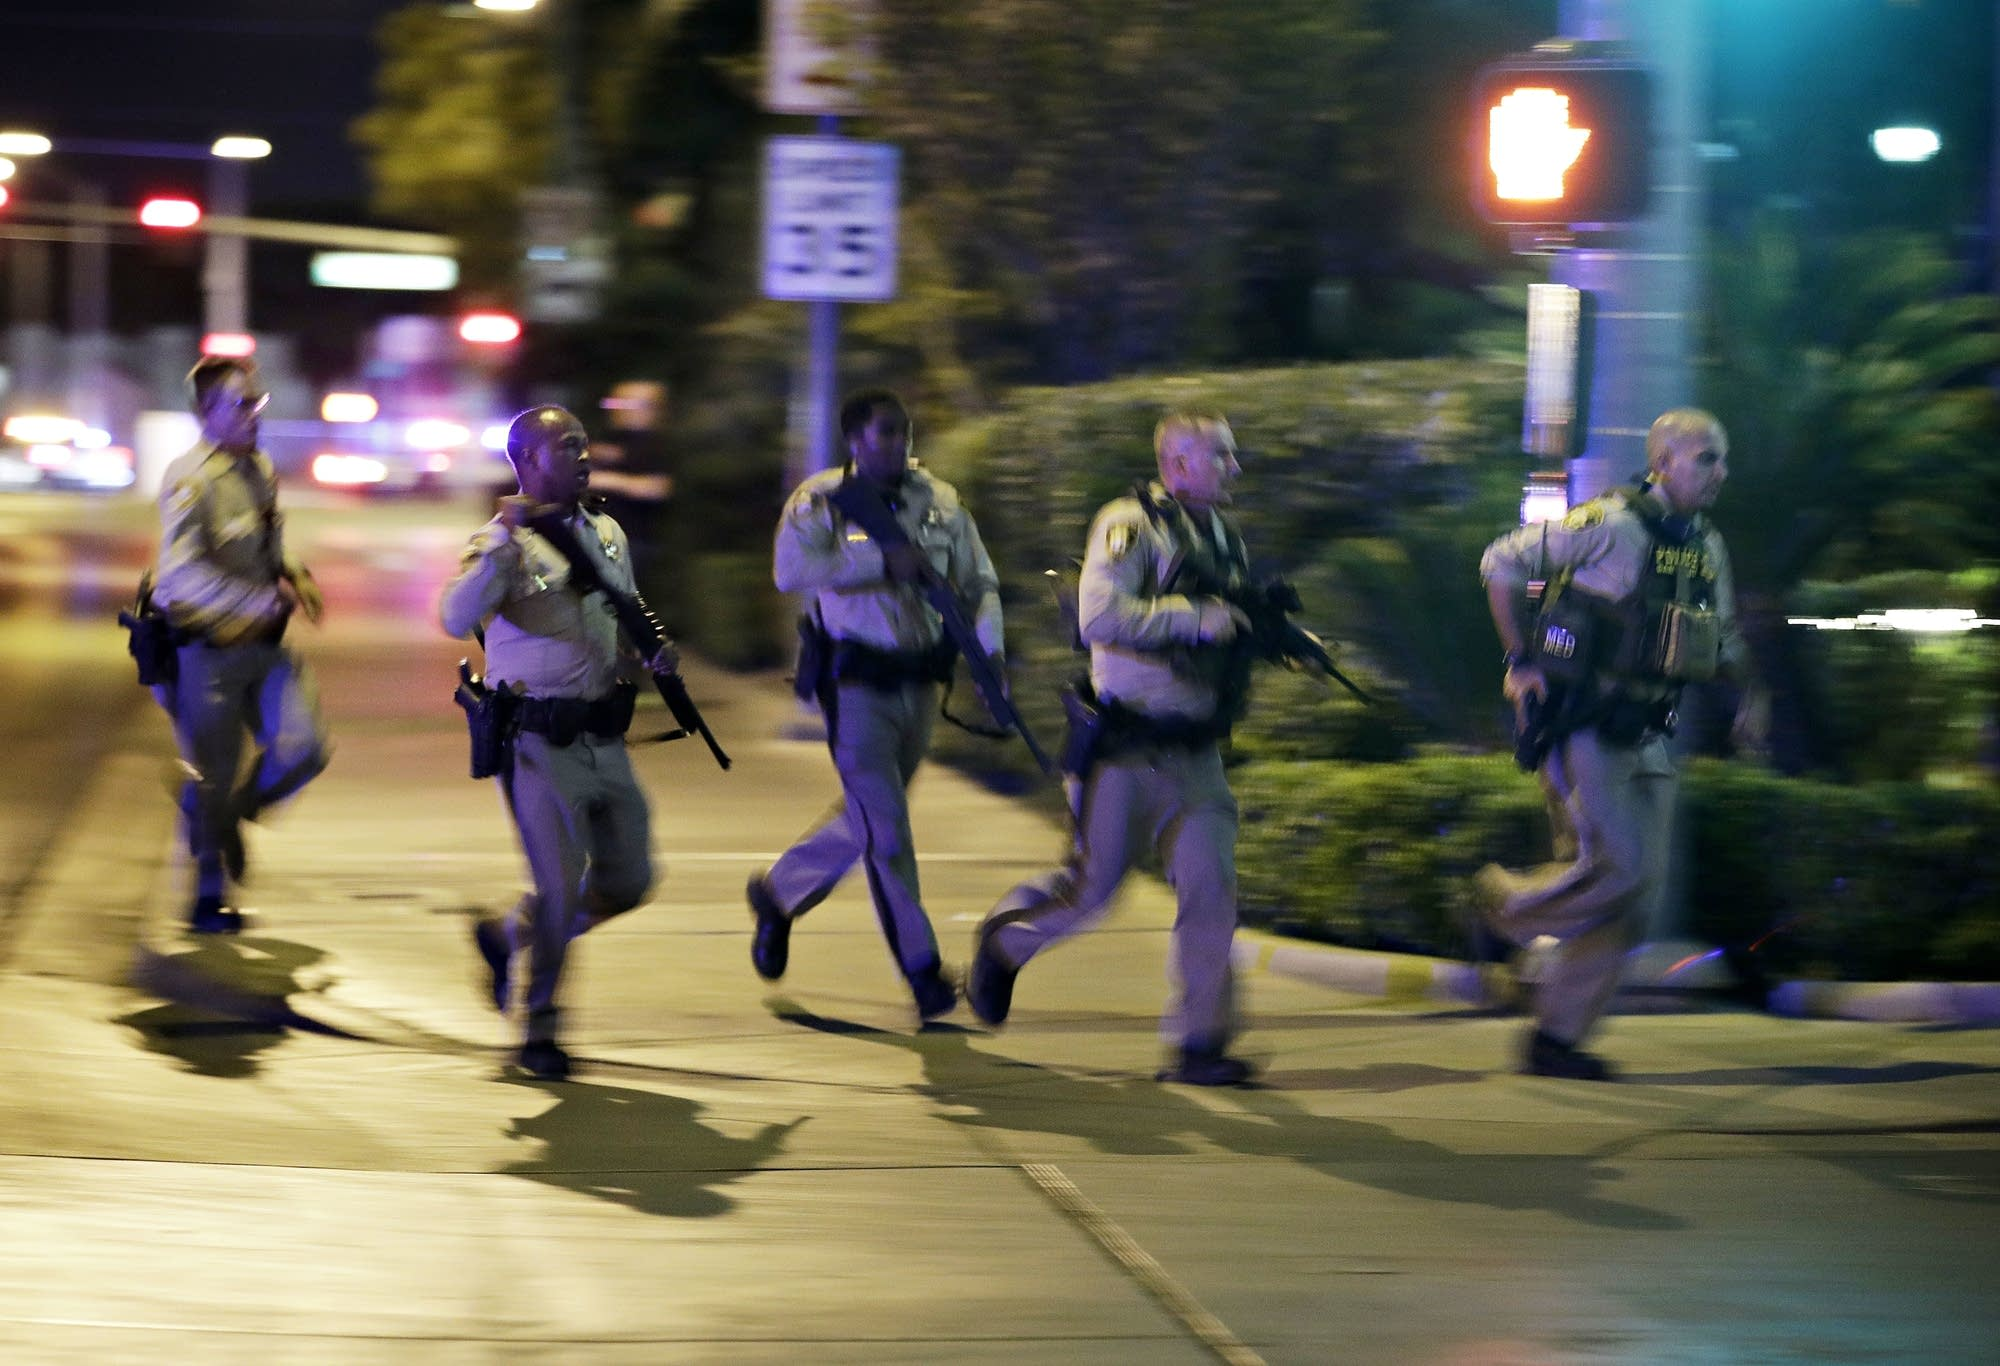 Police run to cover the scene of a shooting near Mandalay Bay.